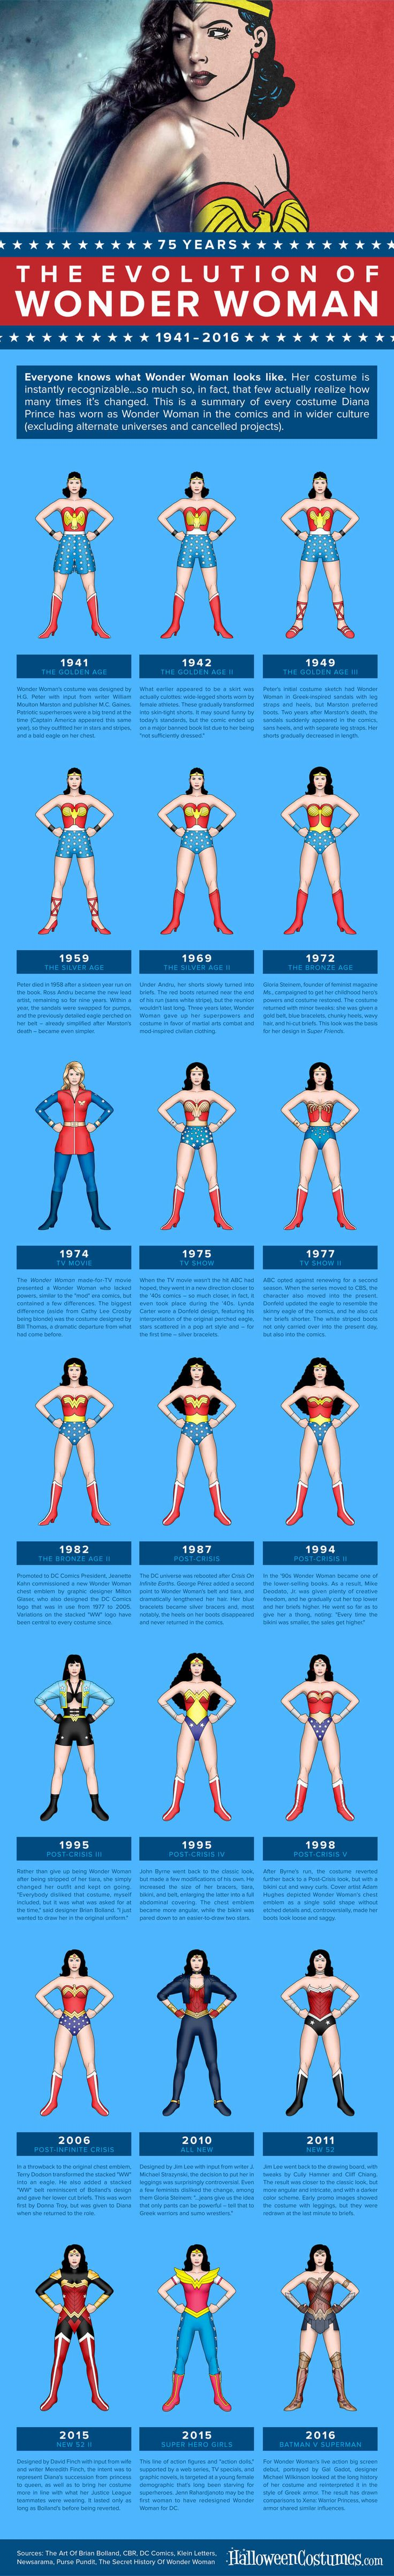 Wonder Woman Costume Evolution [Infographic] from 1941, through Lynda Carter, to Gal Gadot in Batman v Superman